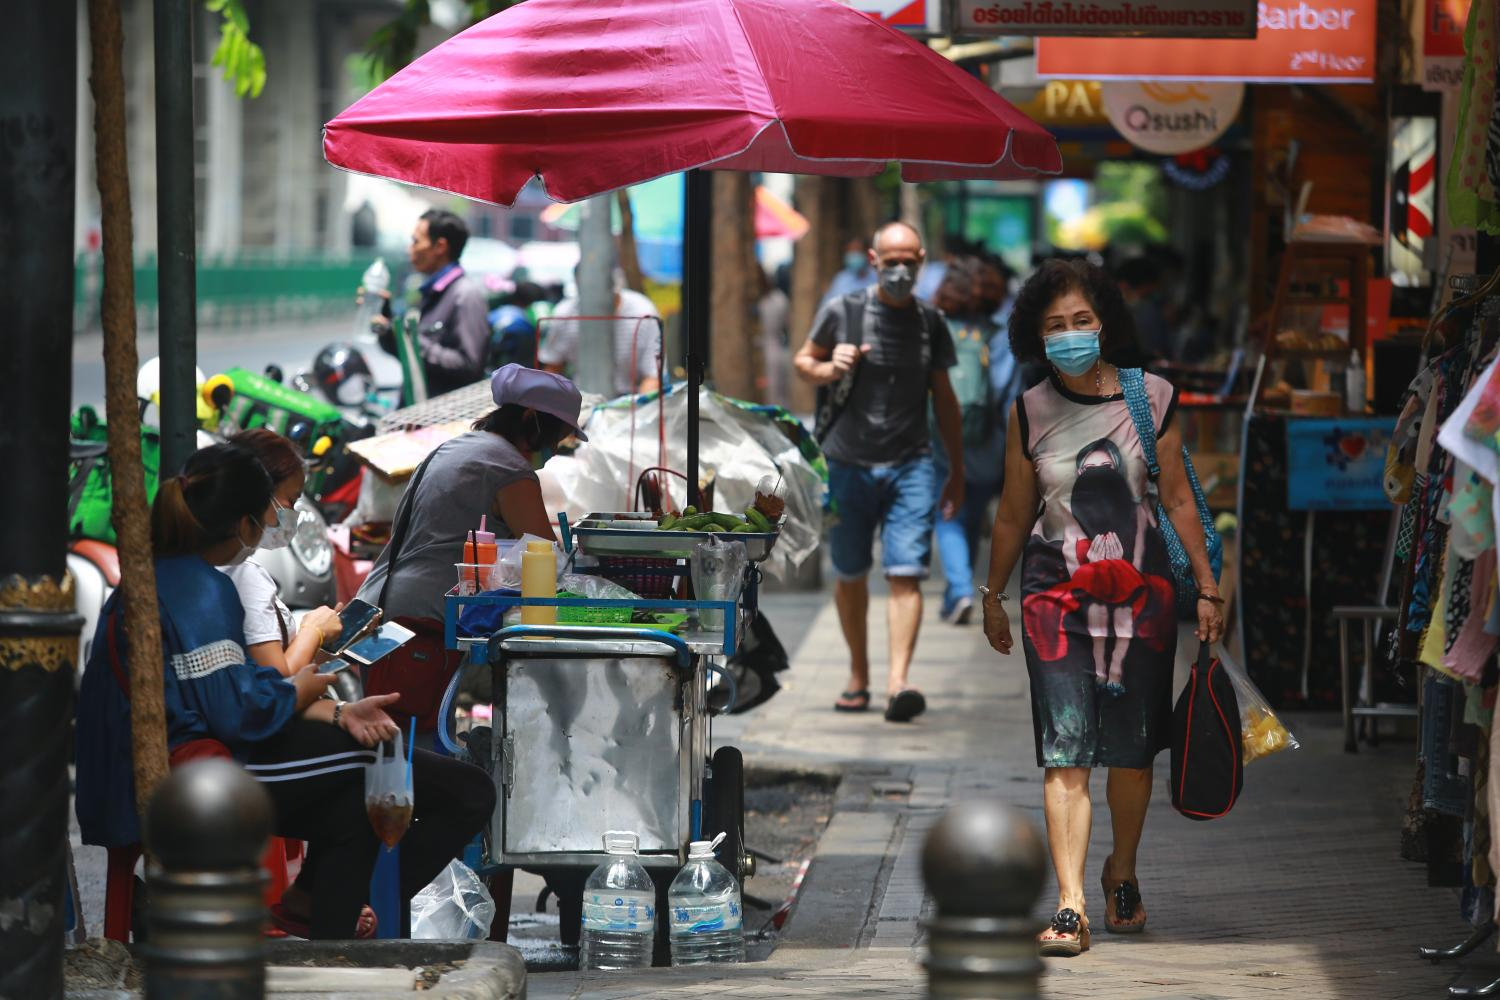 The third wave of Covid-19 has affected locals' livelihood, even as businesses were adjusting to the economic impact of the first and second outbreaks. (Photo by Somchai Poomlard)